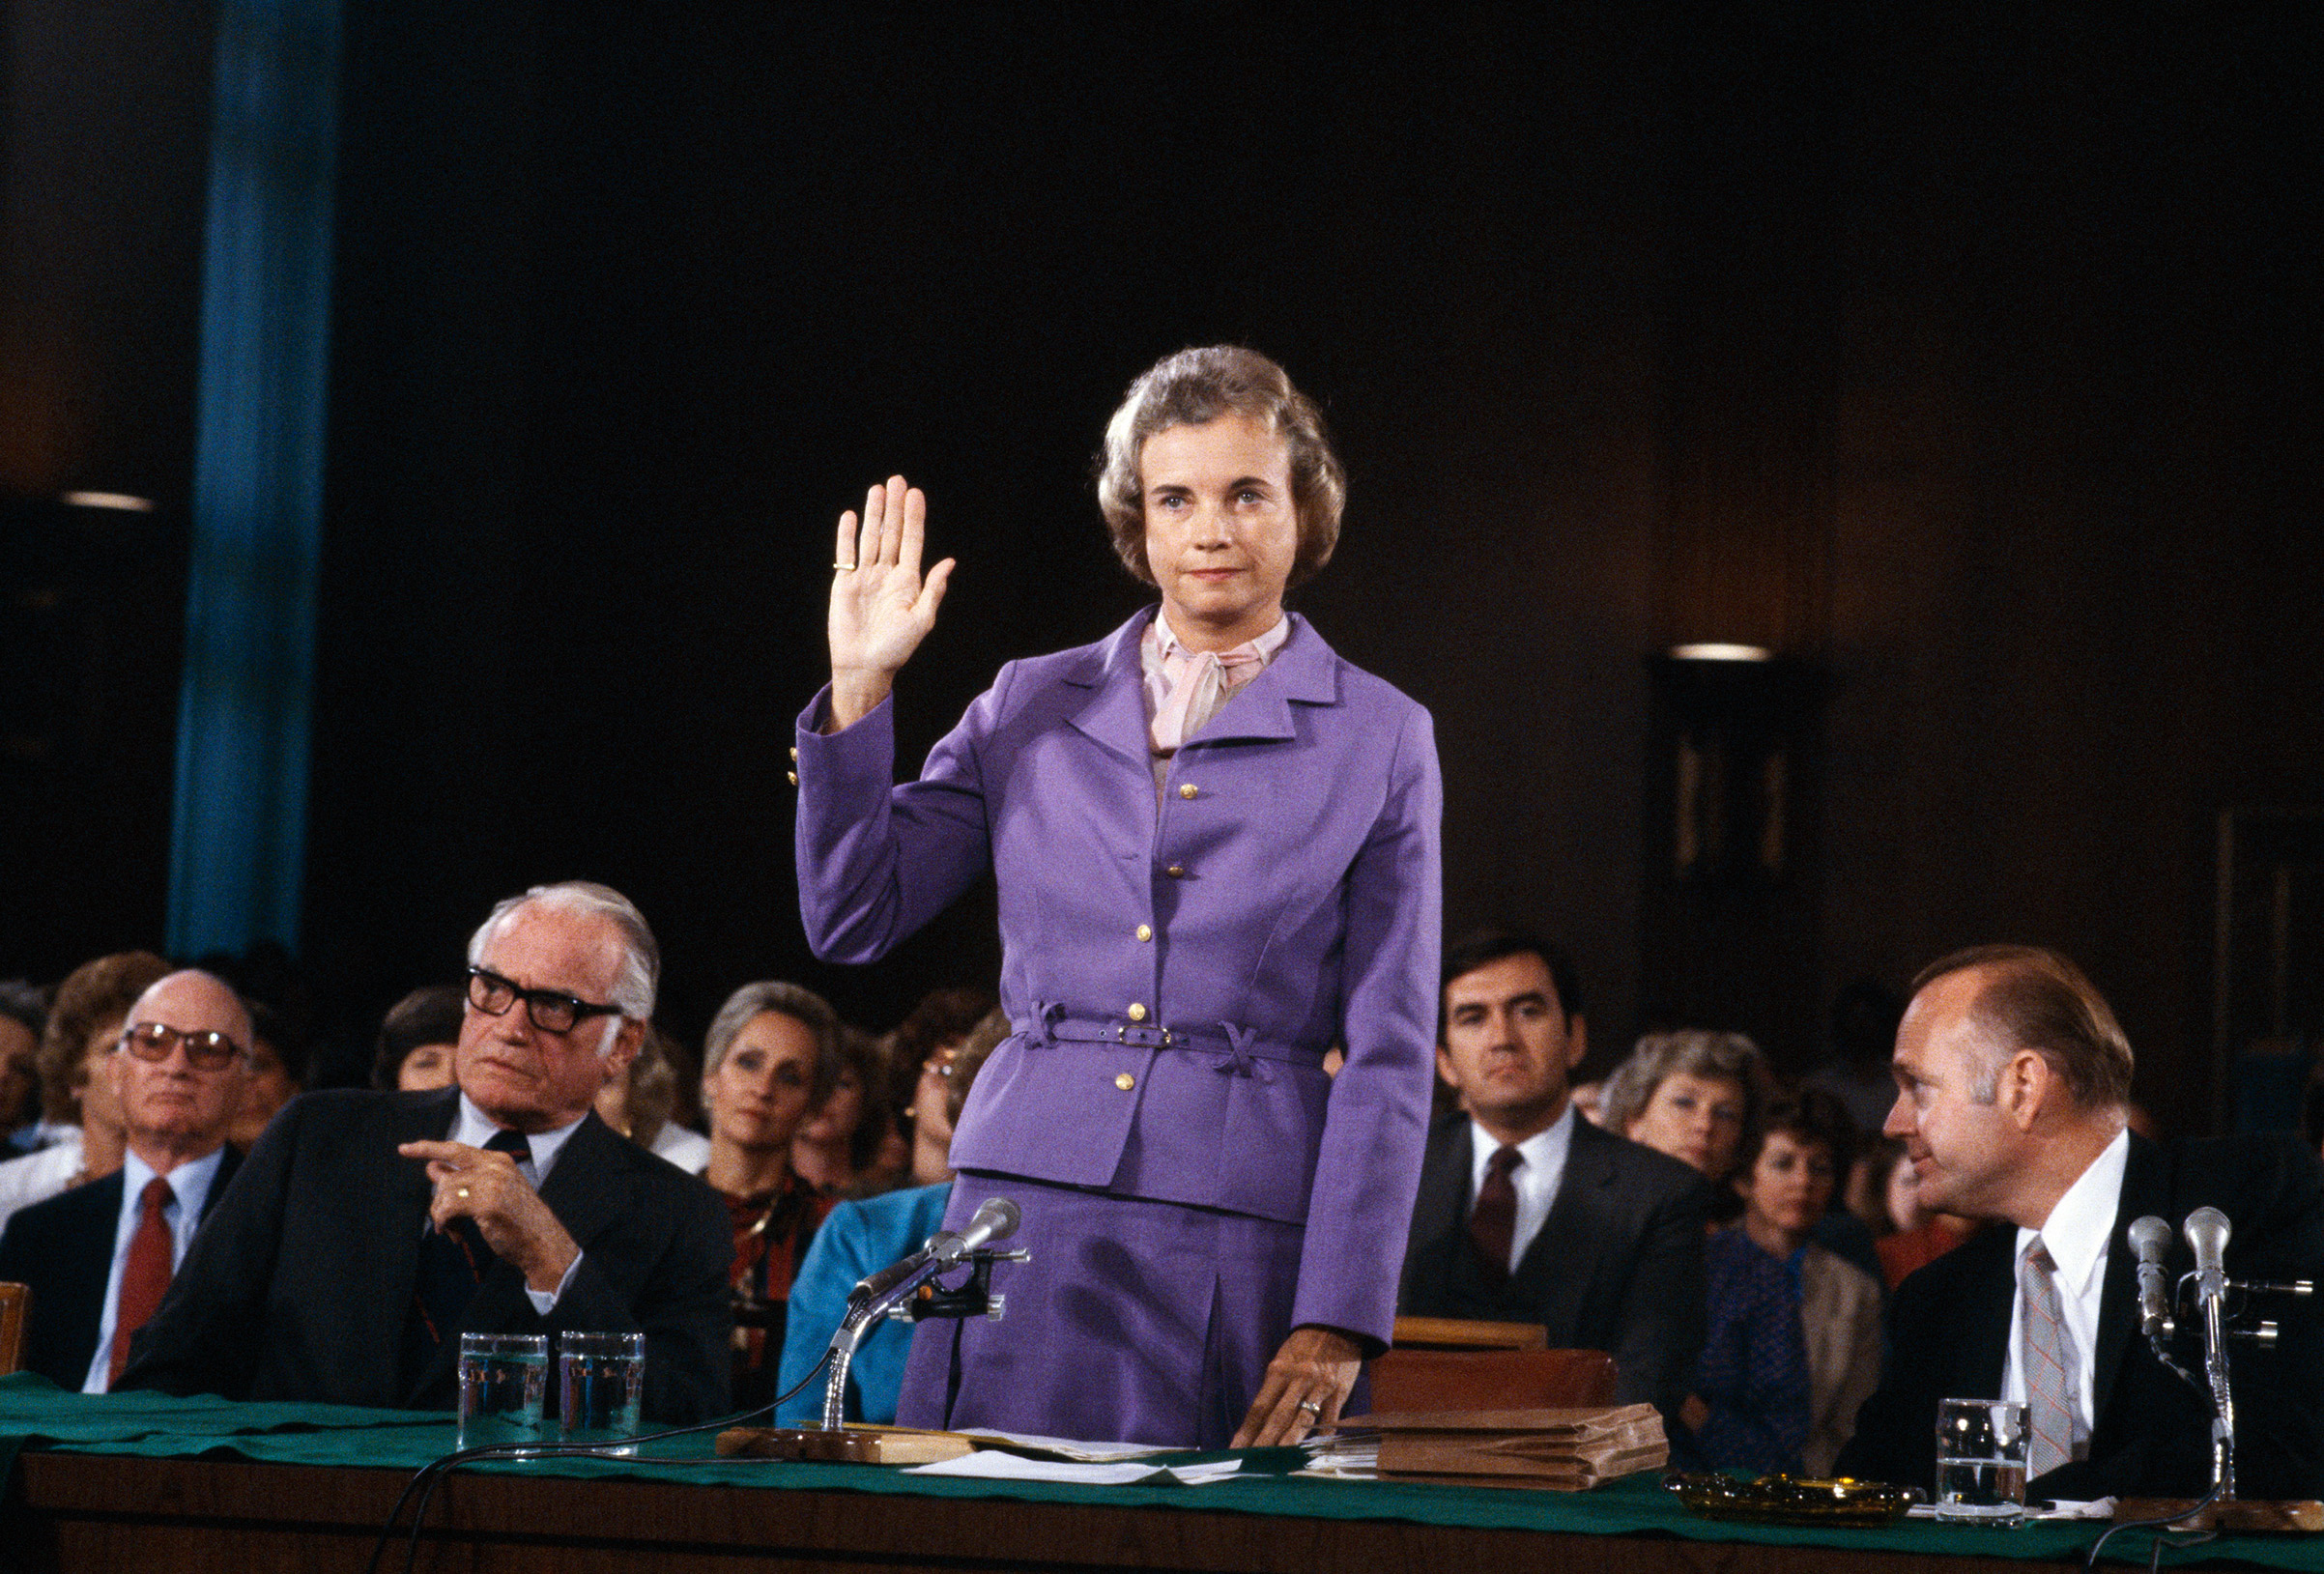 Sandra Day O'Connor is sworn in before the Senate Judiciary committee during confirmation hearings in 1981 in Washington, D.C. as she seeks to become the first female Supreme Court Justice.